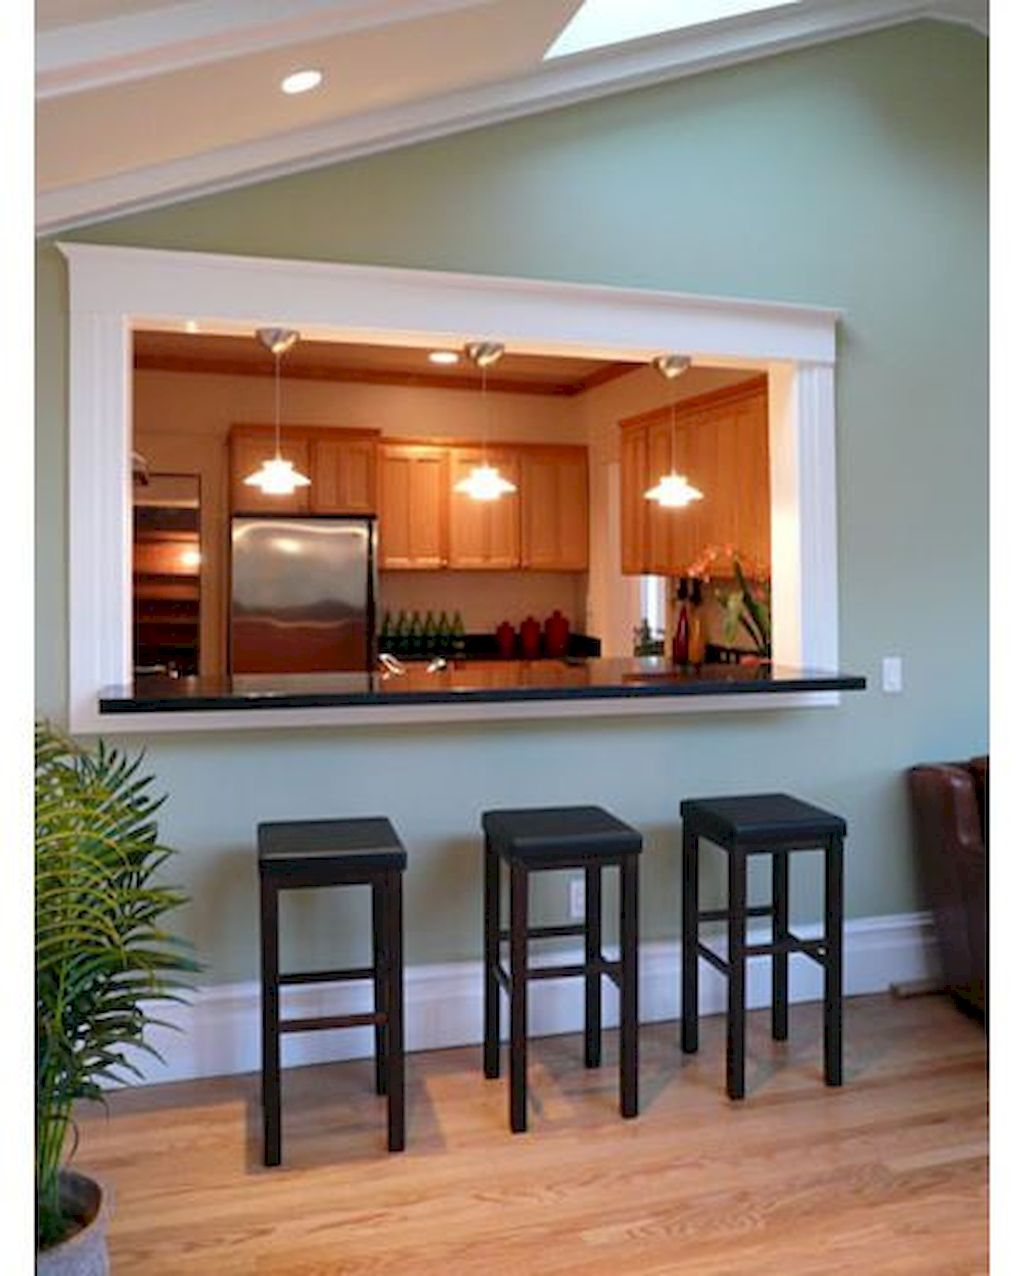 Kitchen Plan And Design For Small Room (5)